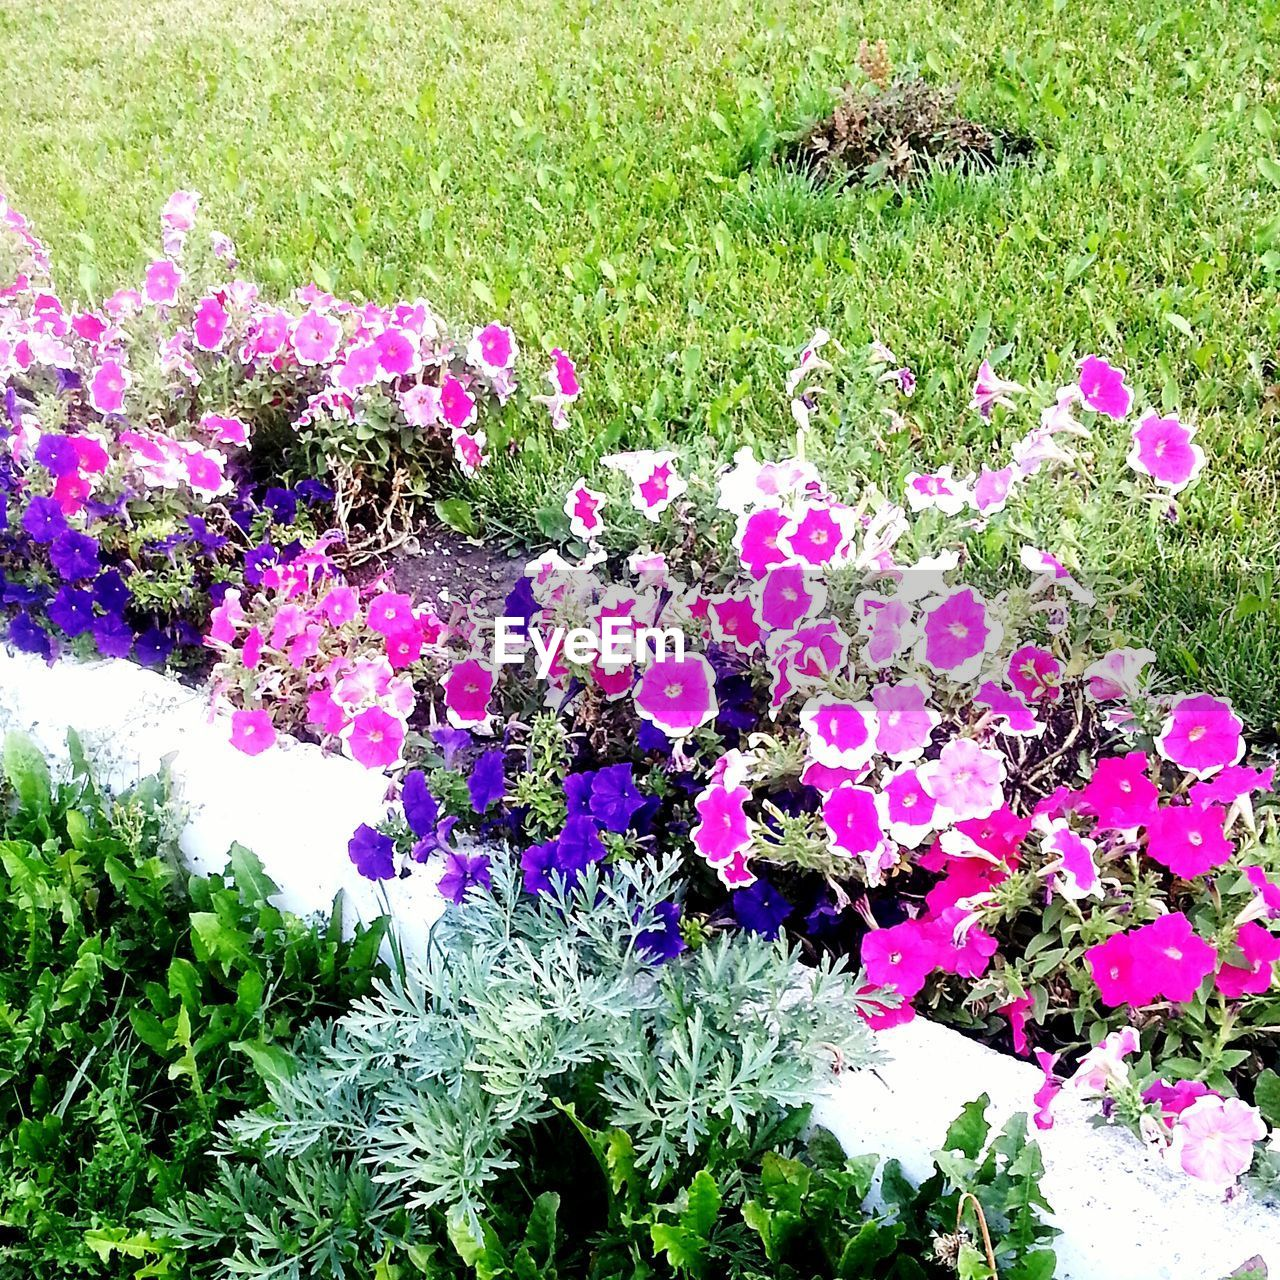 flower, growth, nature, grass, pink color, plant, beauty in nature, field, no people, outdoors, freshness, day, fragility, blooming, flower head